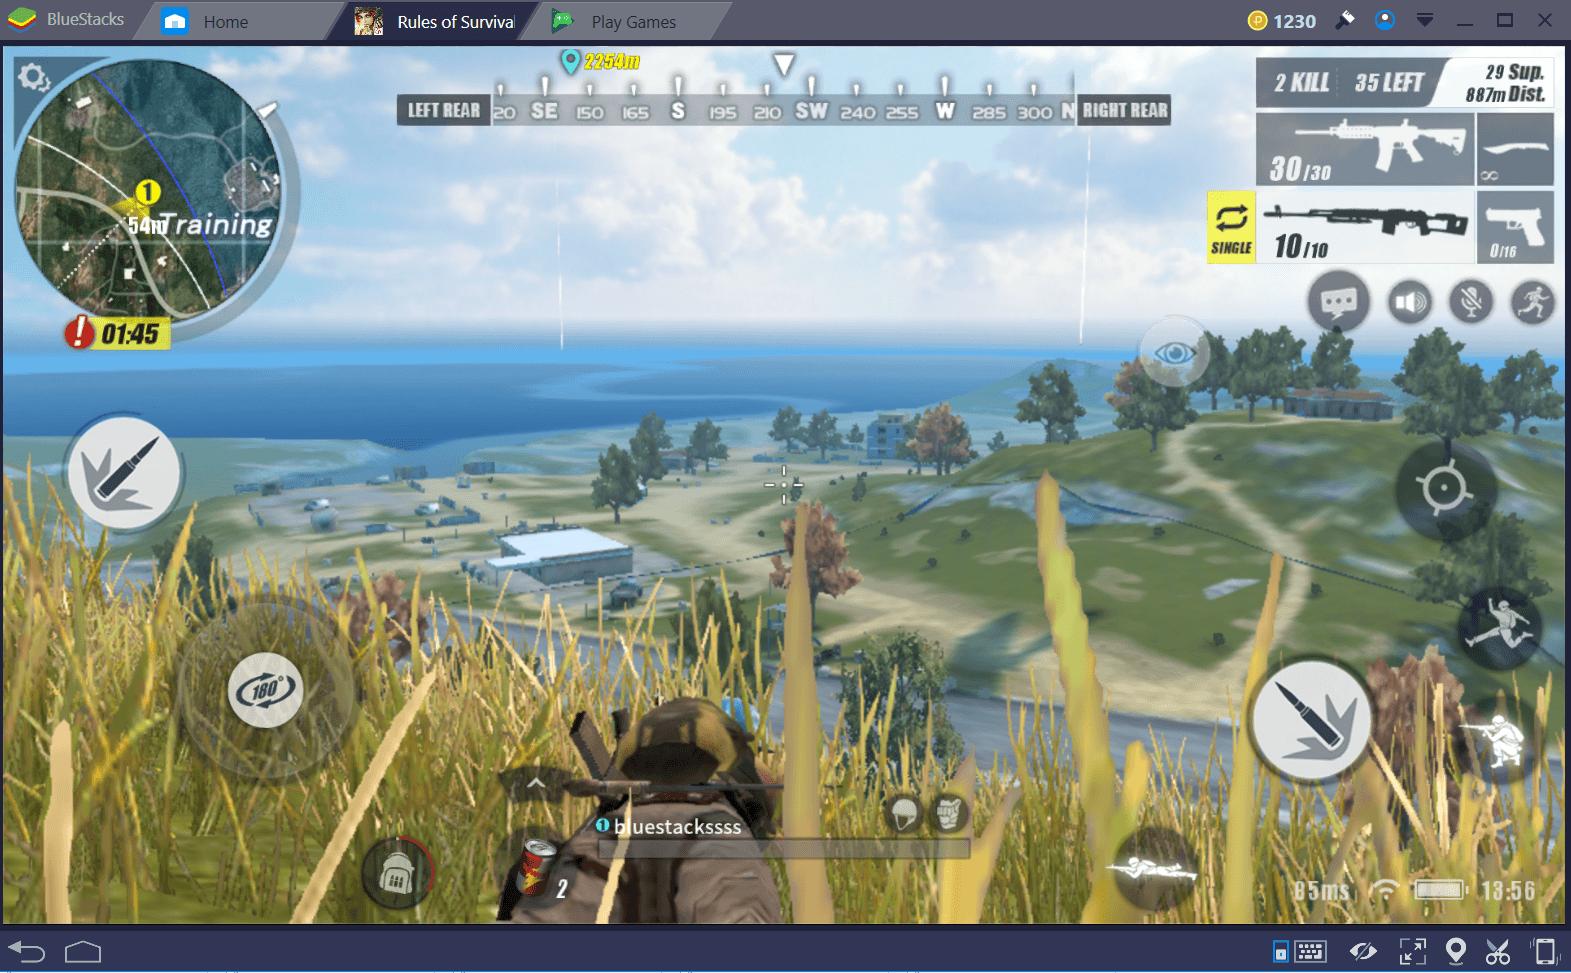 Top Tips For Improving Your Aim When Playing Rules Of Survival